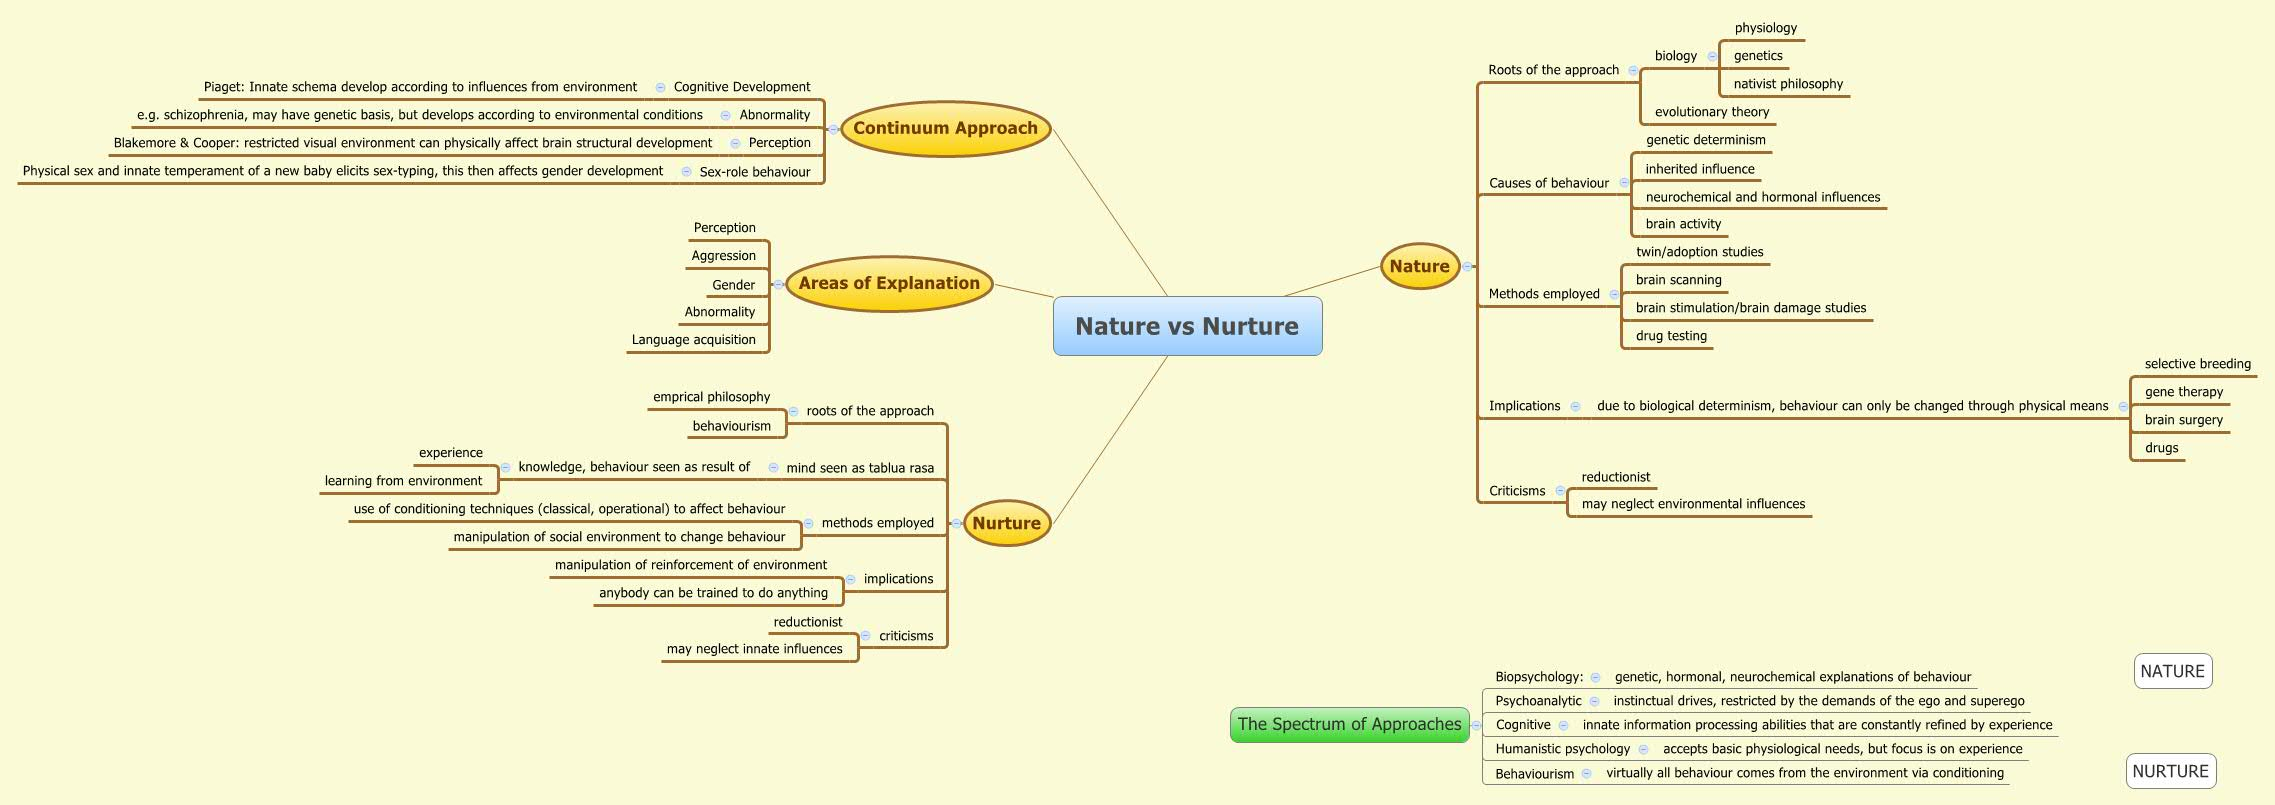 ielts essay nature and nurture The statement 'nature trumps nurture' is referring to the nature versus nurture debate that has been ongoing in psychology since its origin the debate aims to examine to what extent human development is influenced by our genetic inheritance (nature) and by external environmental influences (nurture) one principle.